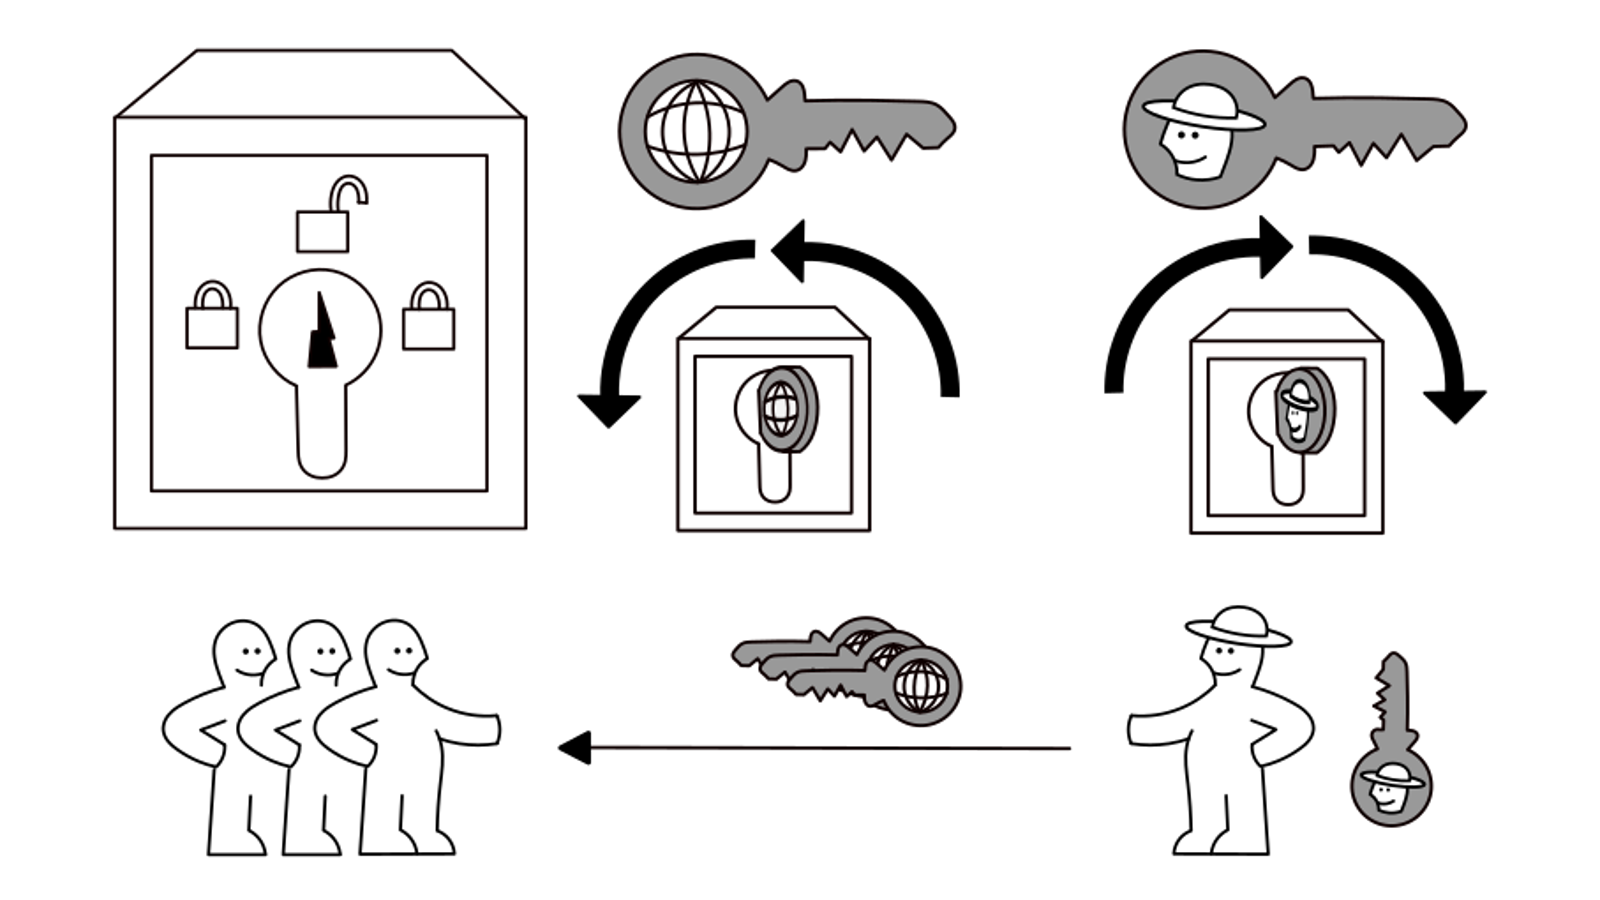 learn computing concepts with ikea